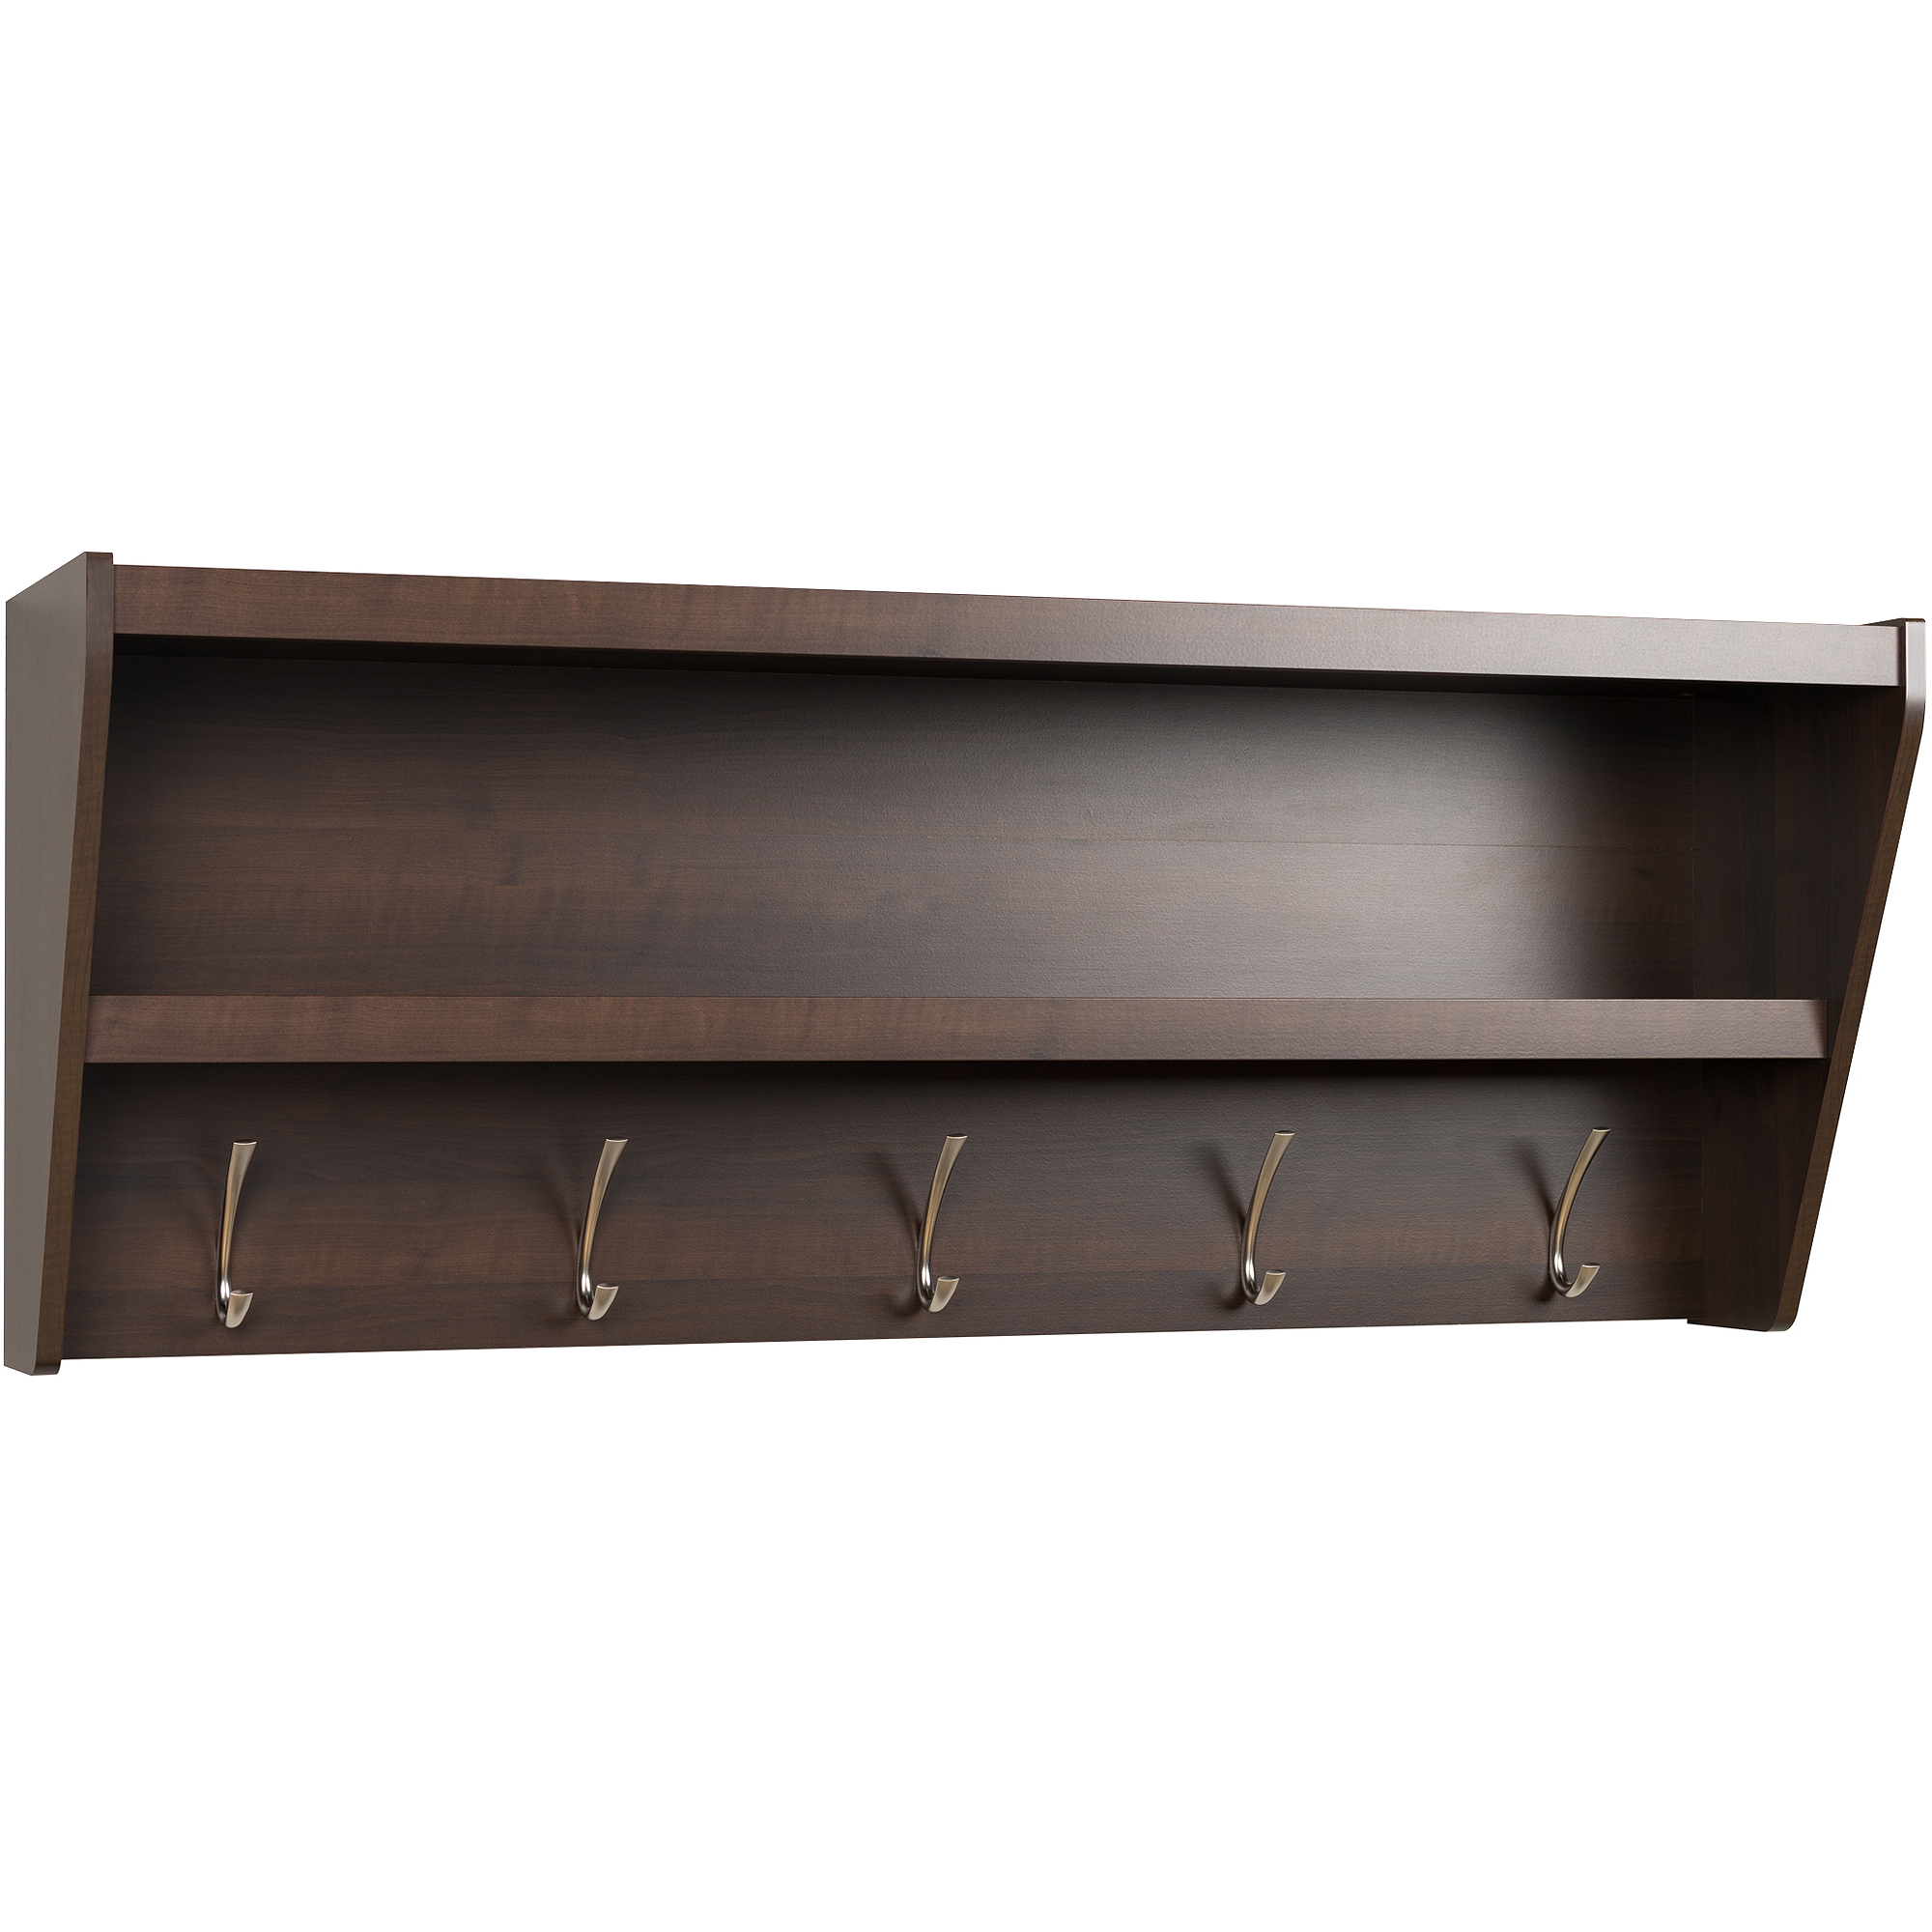 prepac floating entryway shelf and coat rack bookshelf corner pantry cupboard bunnings brackets long side oak wall hanger glass vanity bathroom garage fire mantle display ikea